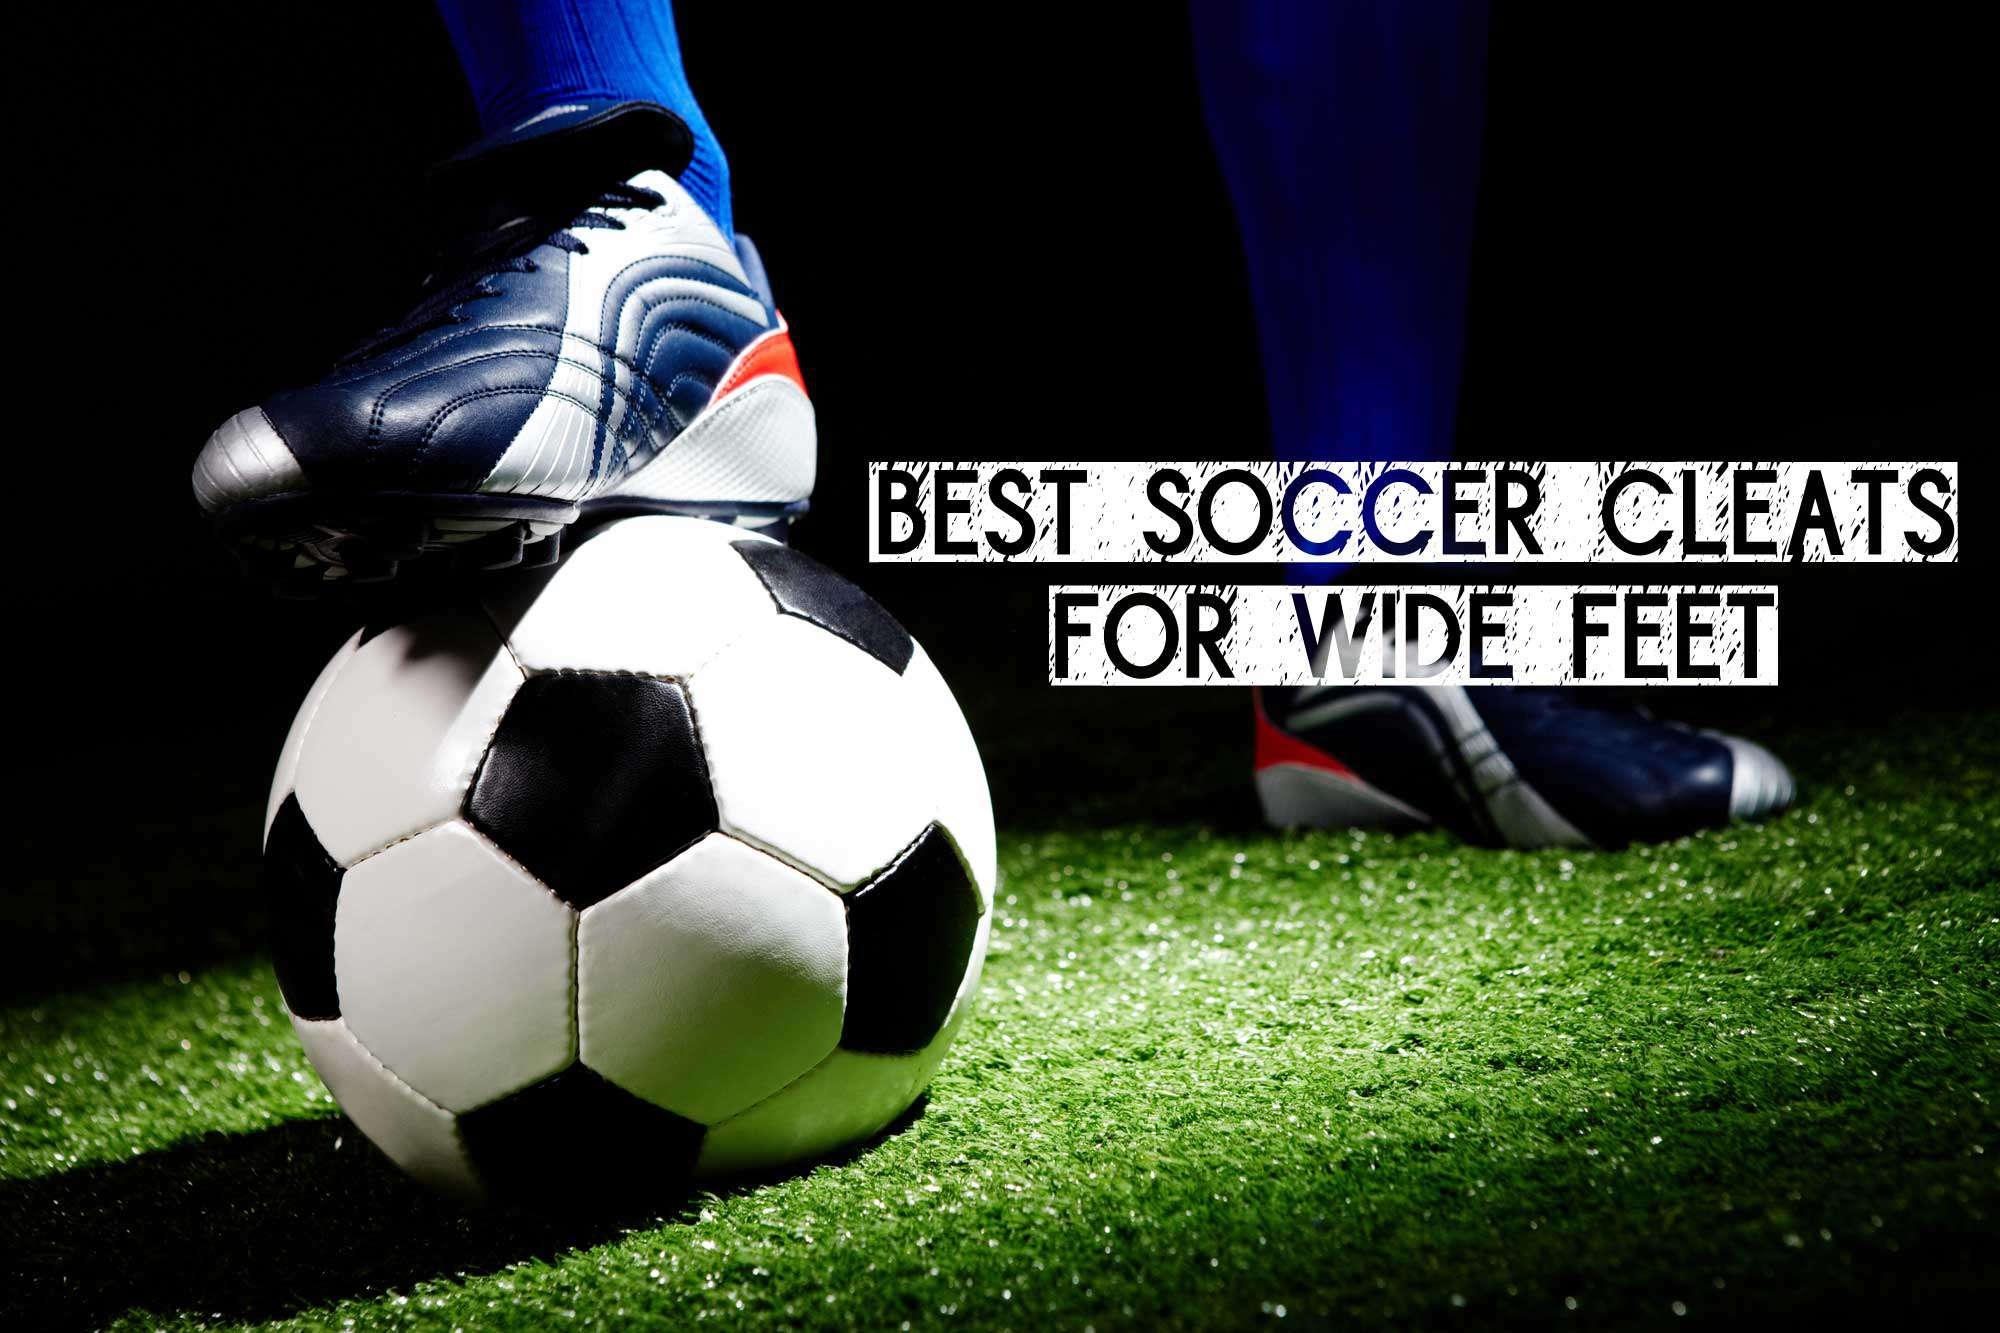 ad020082cea 13 Best Soccer Cleats for Wide Feet - 2019 Selection